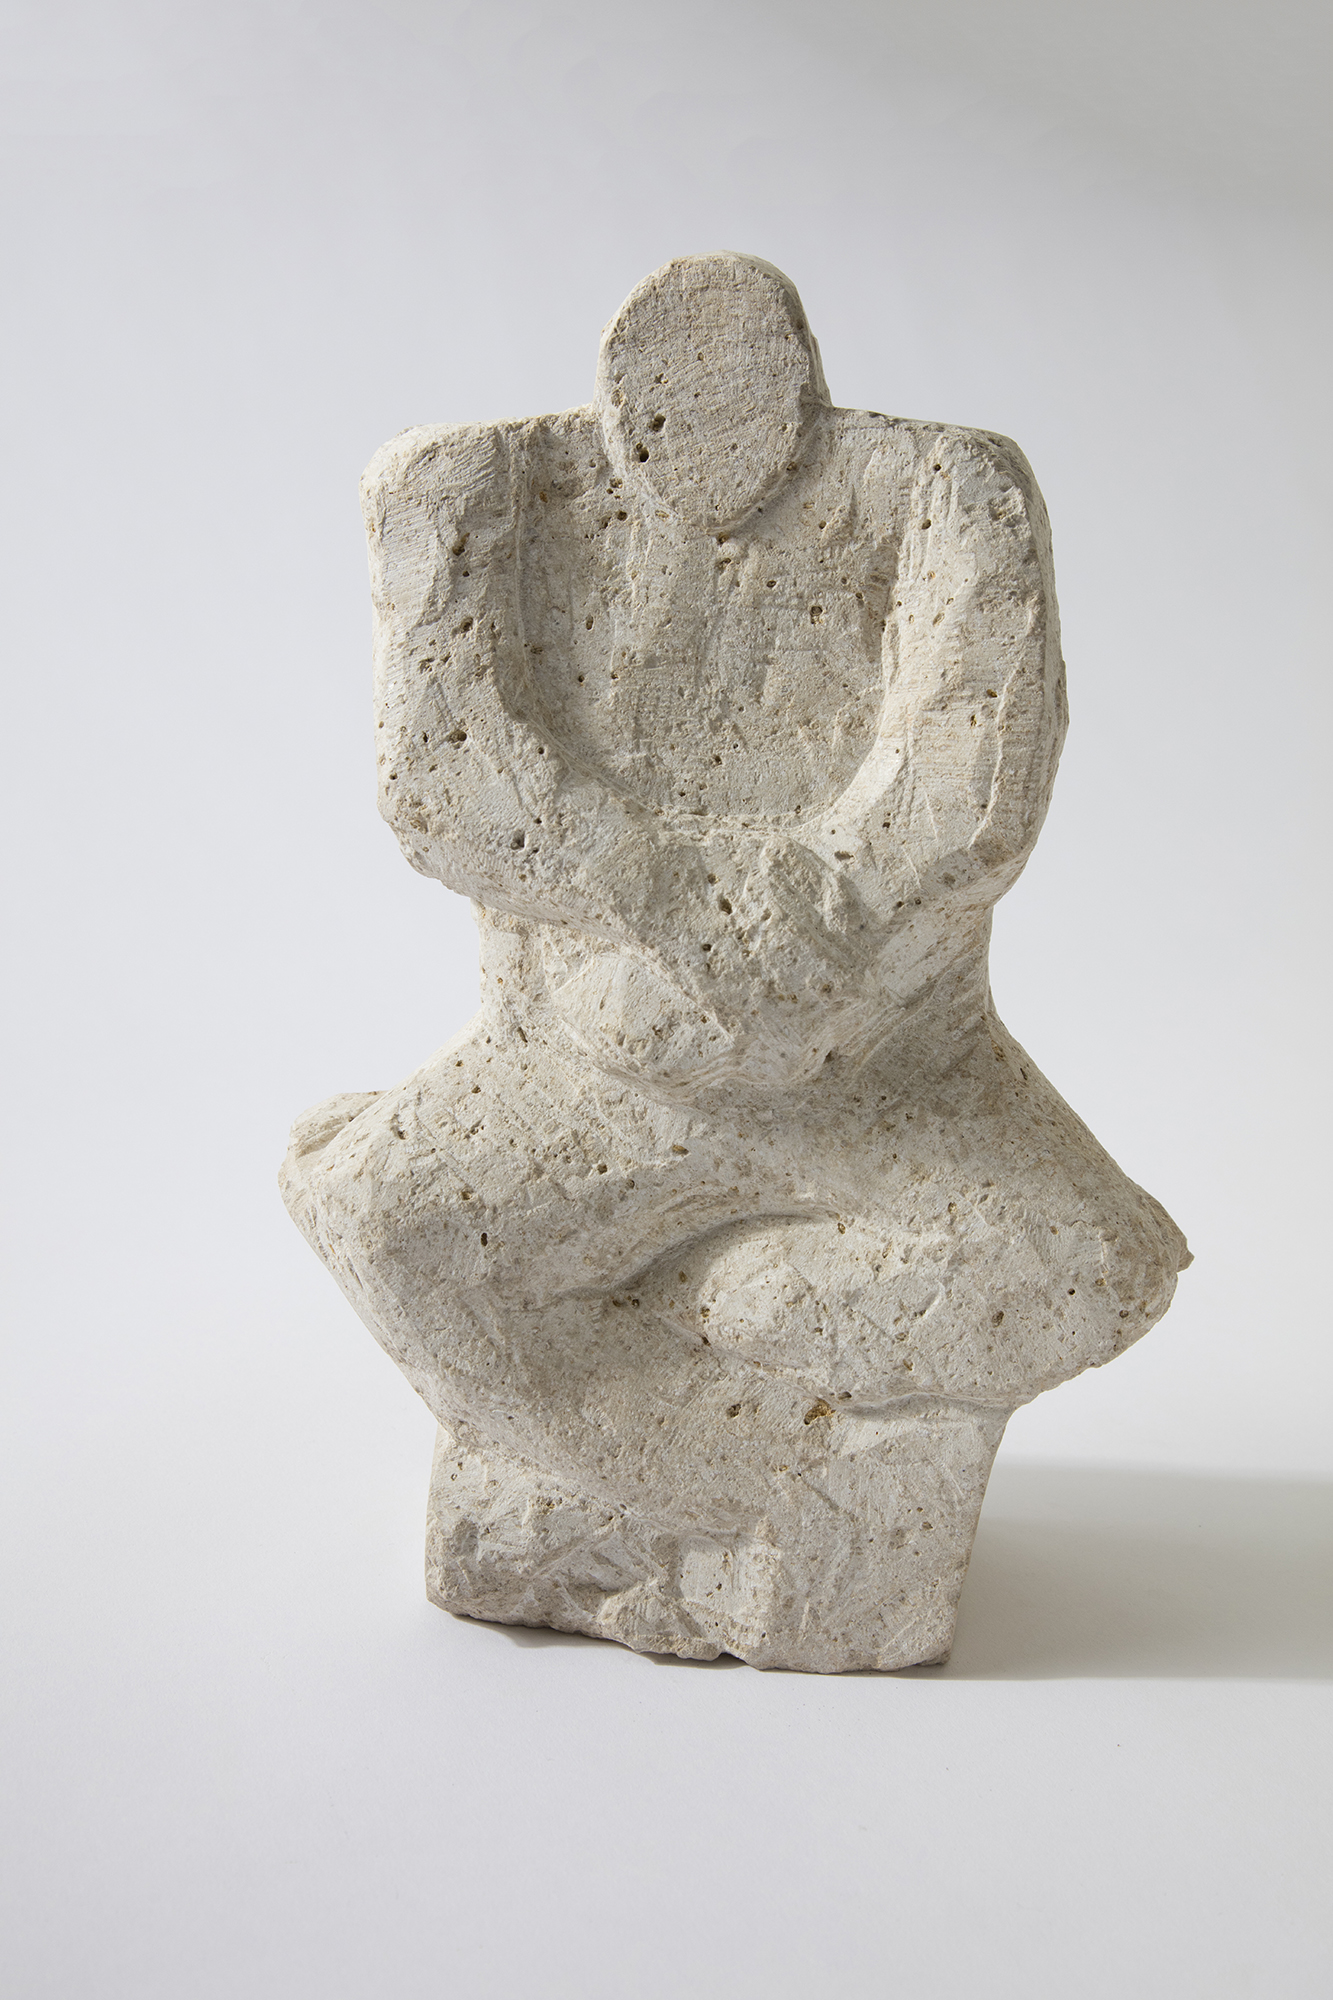 Seated Figure, limestone, 2017